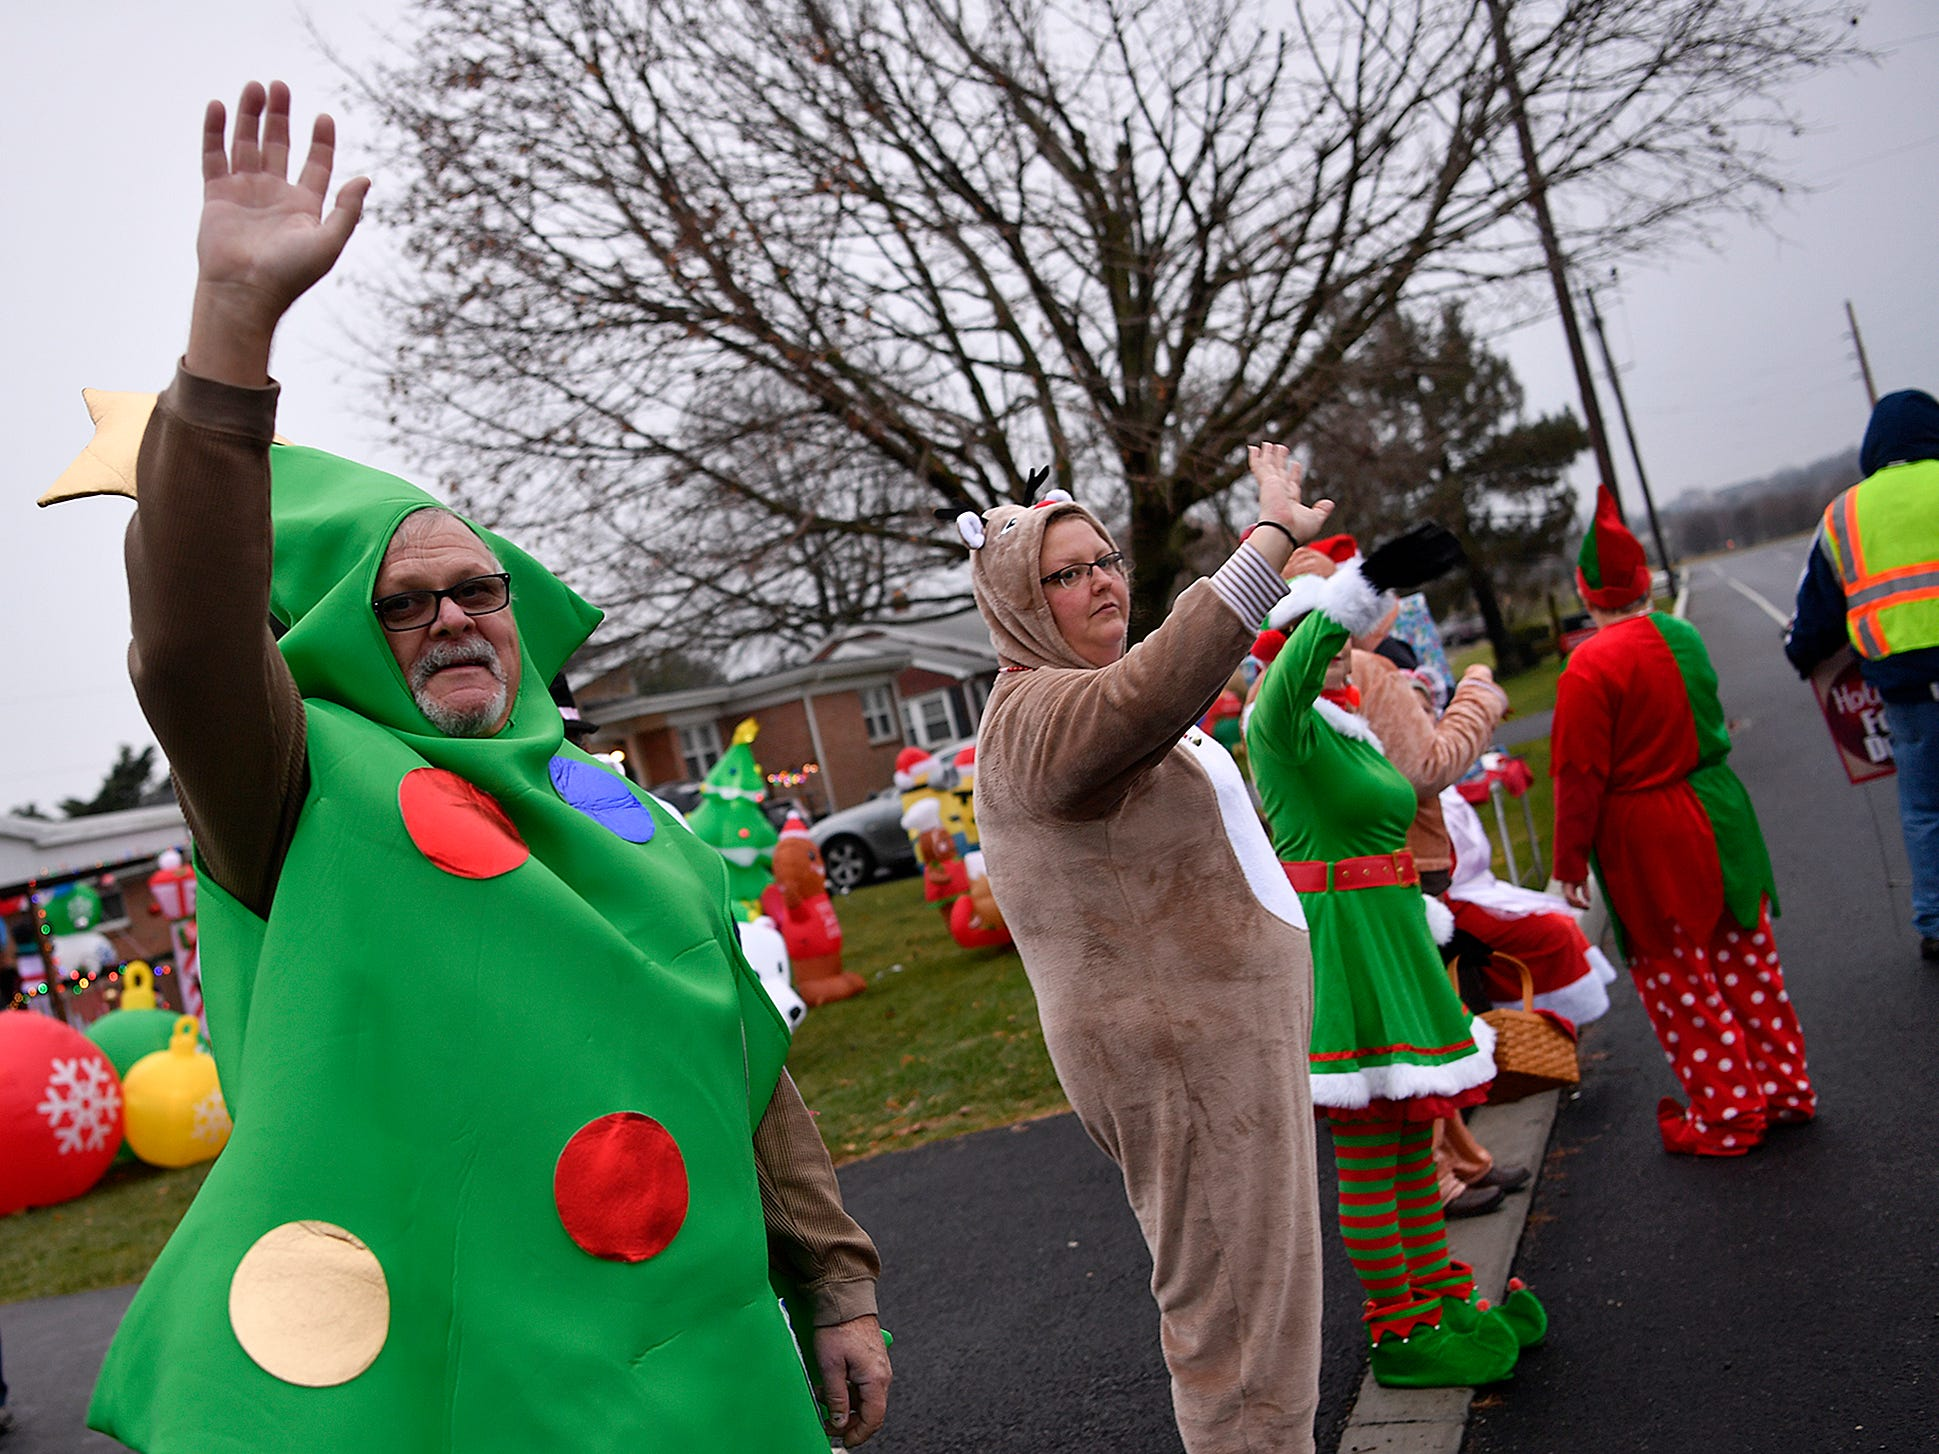 Lee Myers, left, and his family share their holiday spirit while collecting canned goods in front of their home on Loucks Road in West Manchester Township for donation to local food banks, Sunday, December 2, 2018.